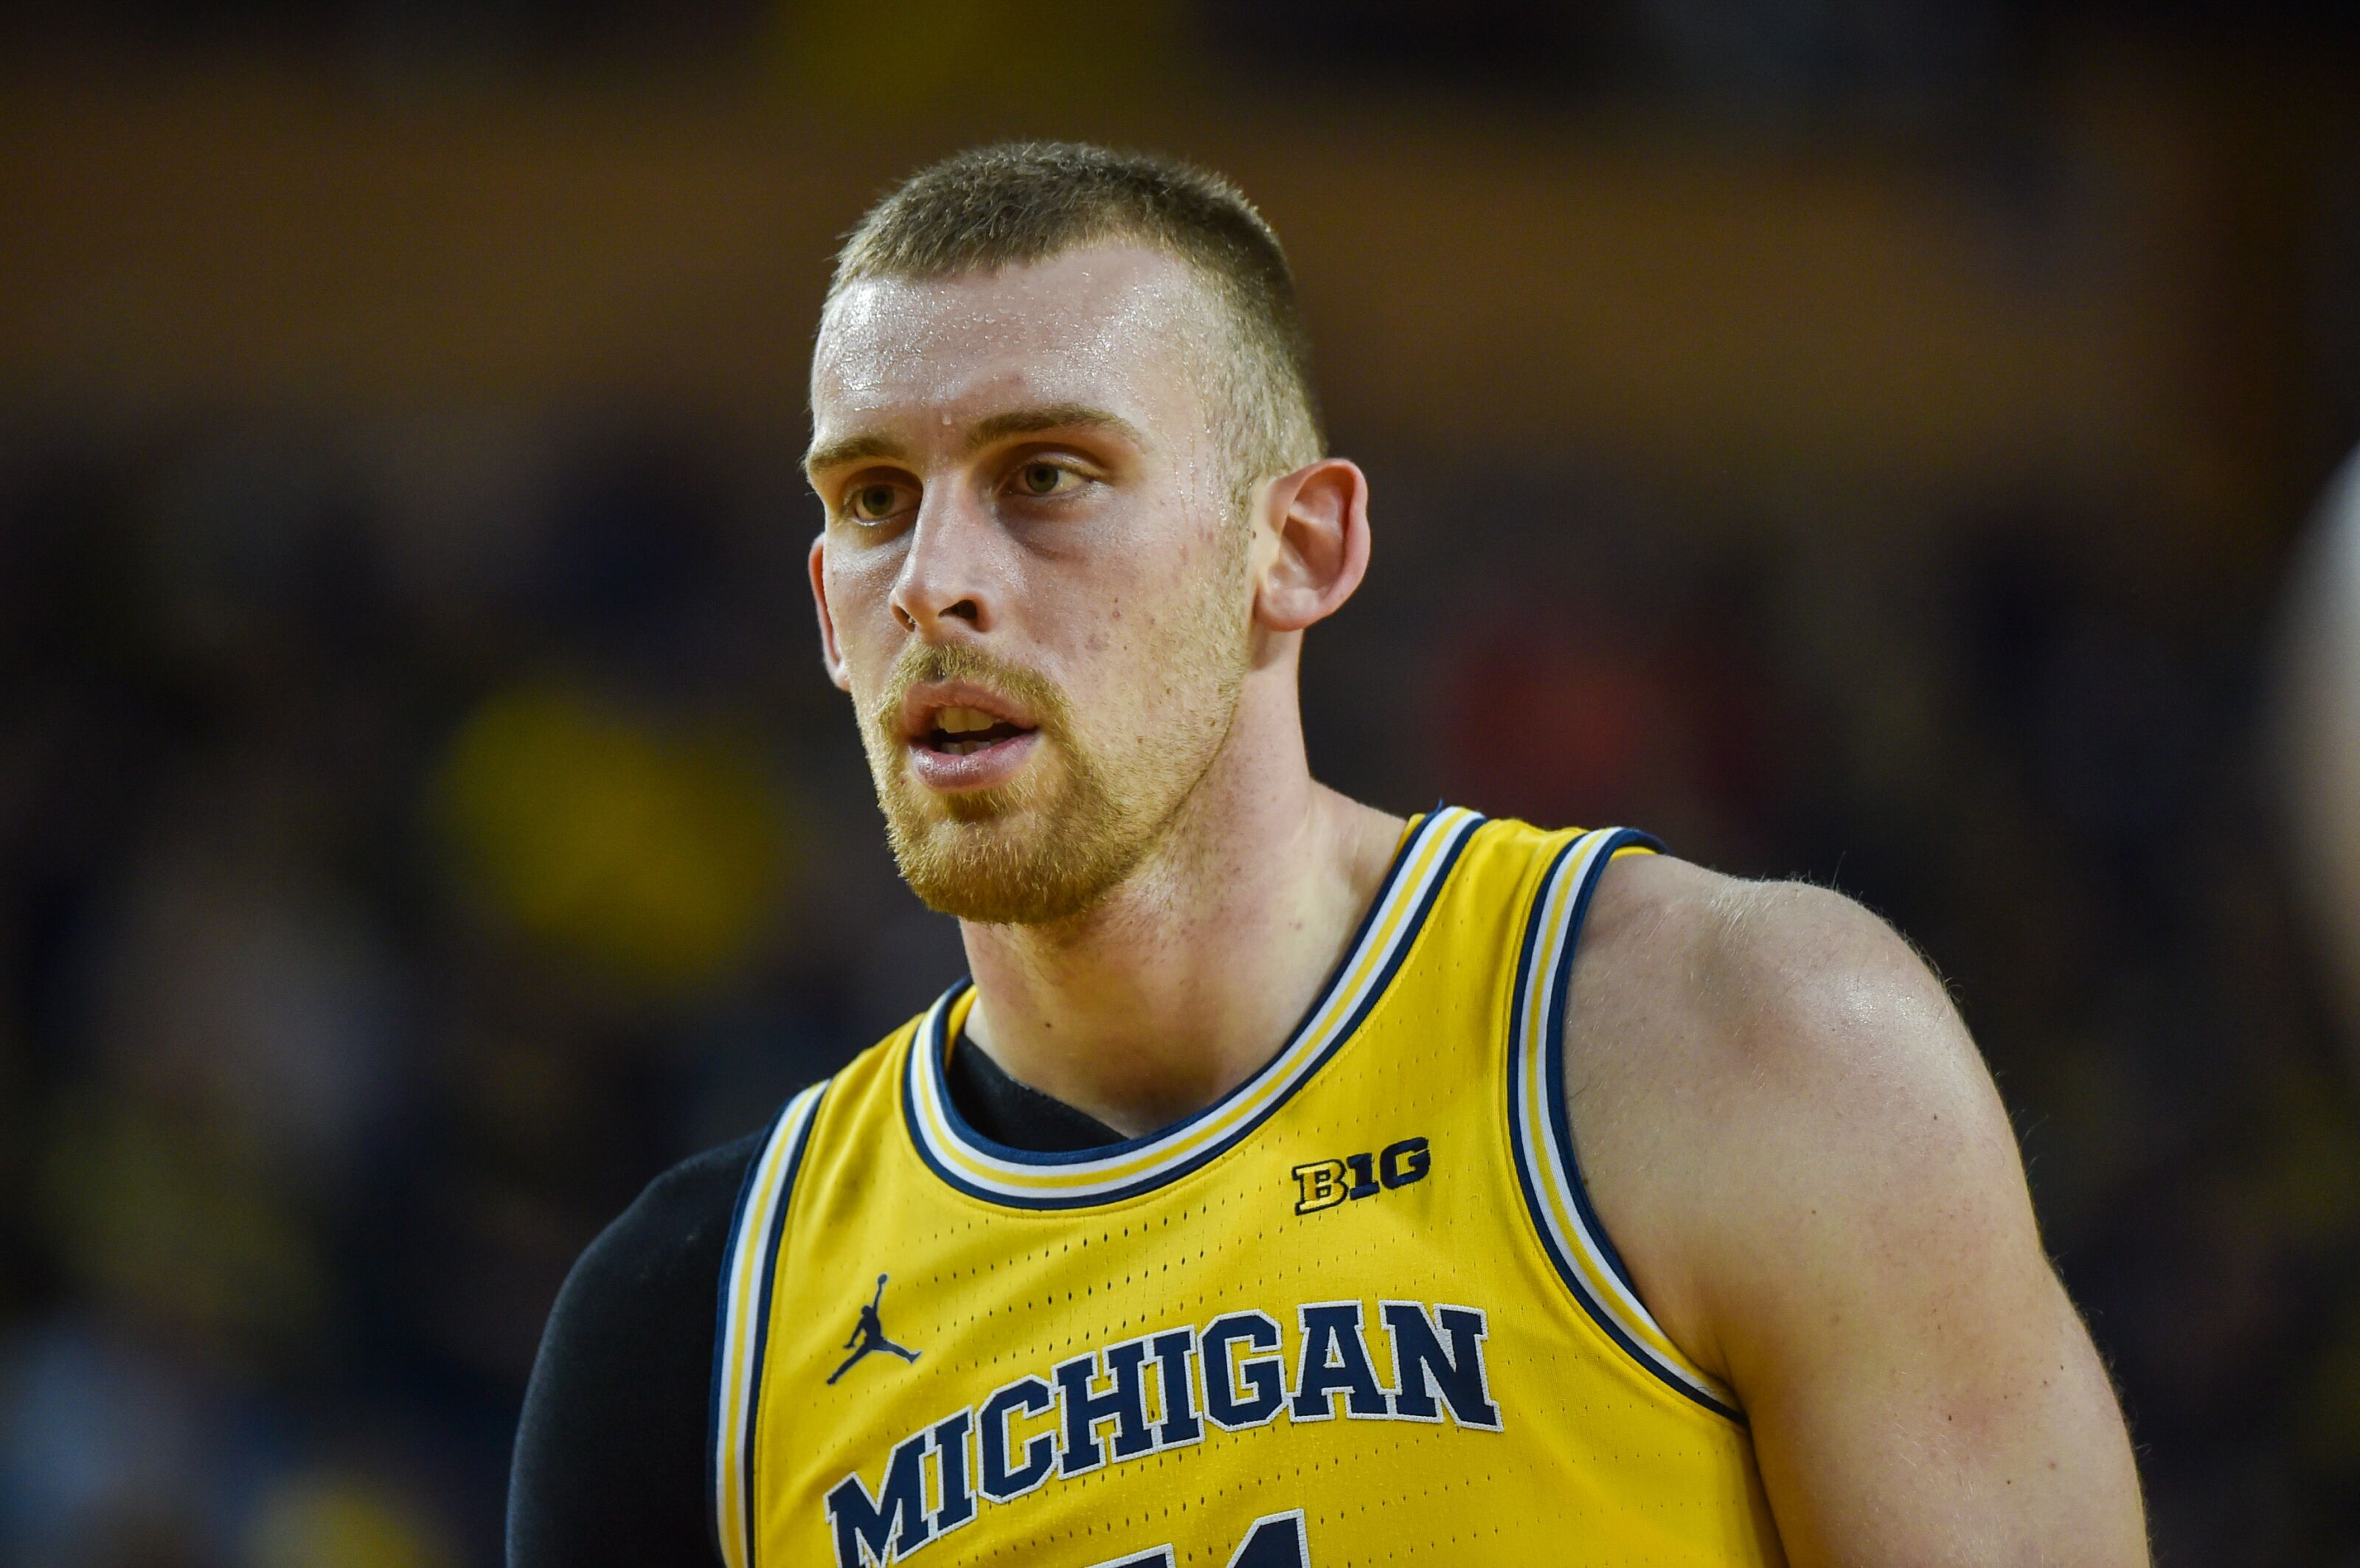 Michigan Basketball: Wolverines need to get Austin Davis for a 5th year